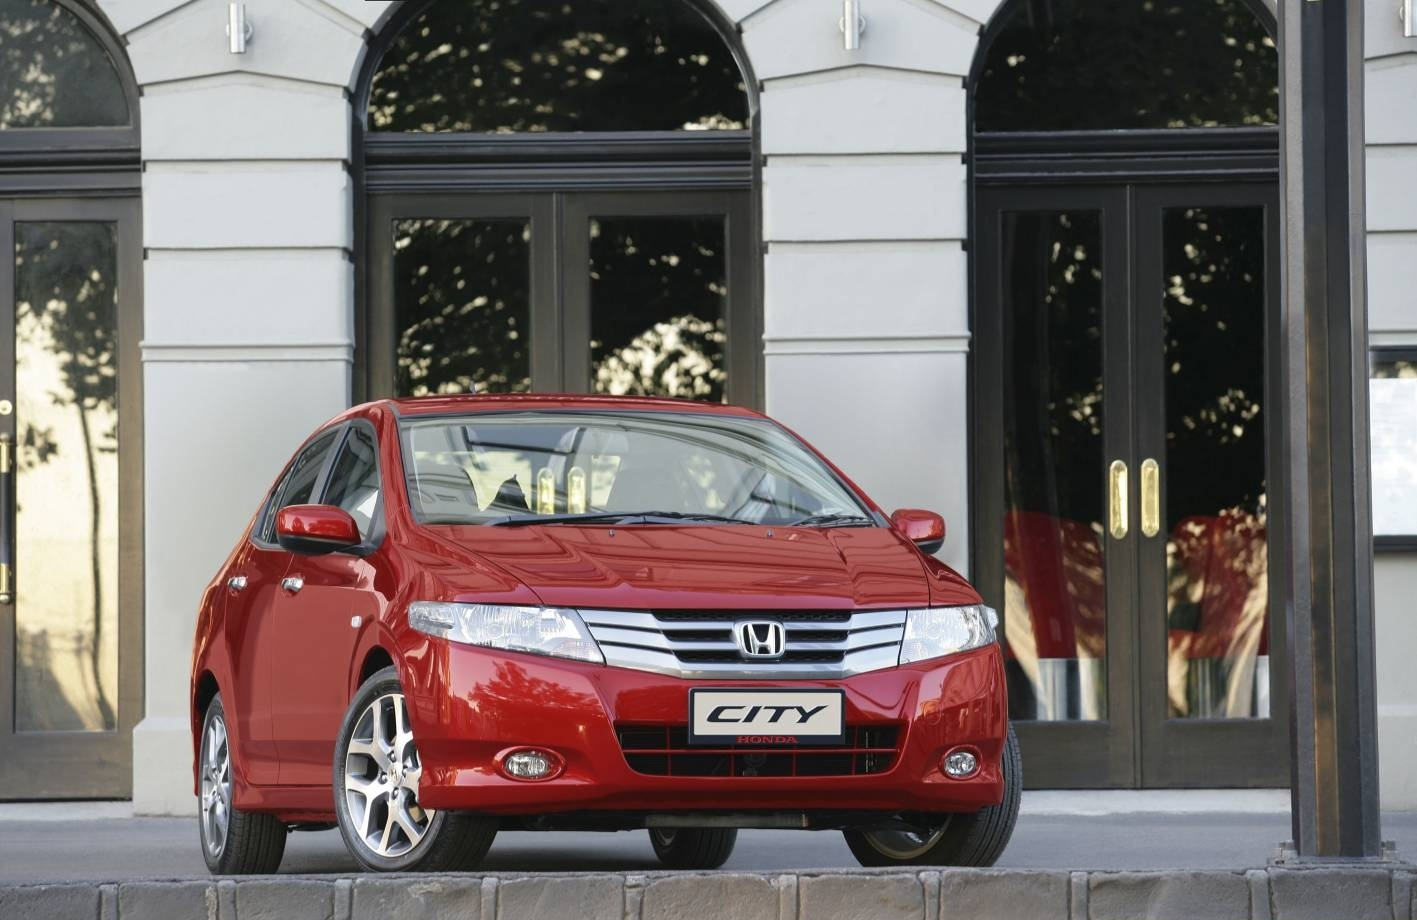 Honda City 2019 Exterior Front End